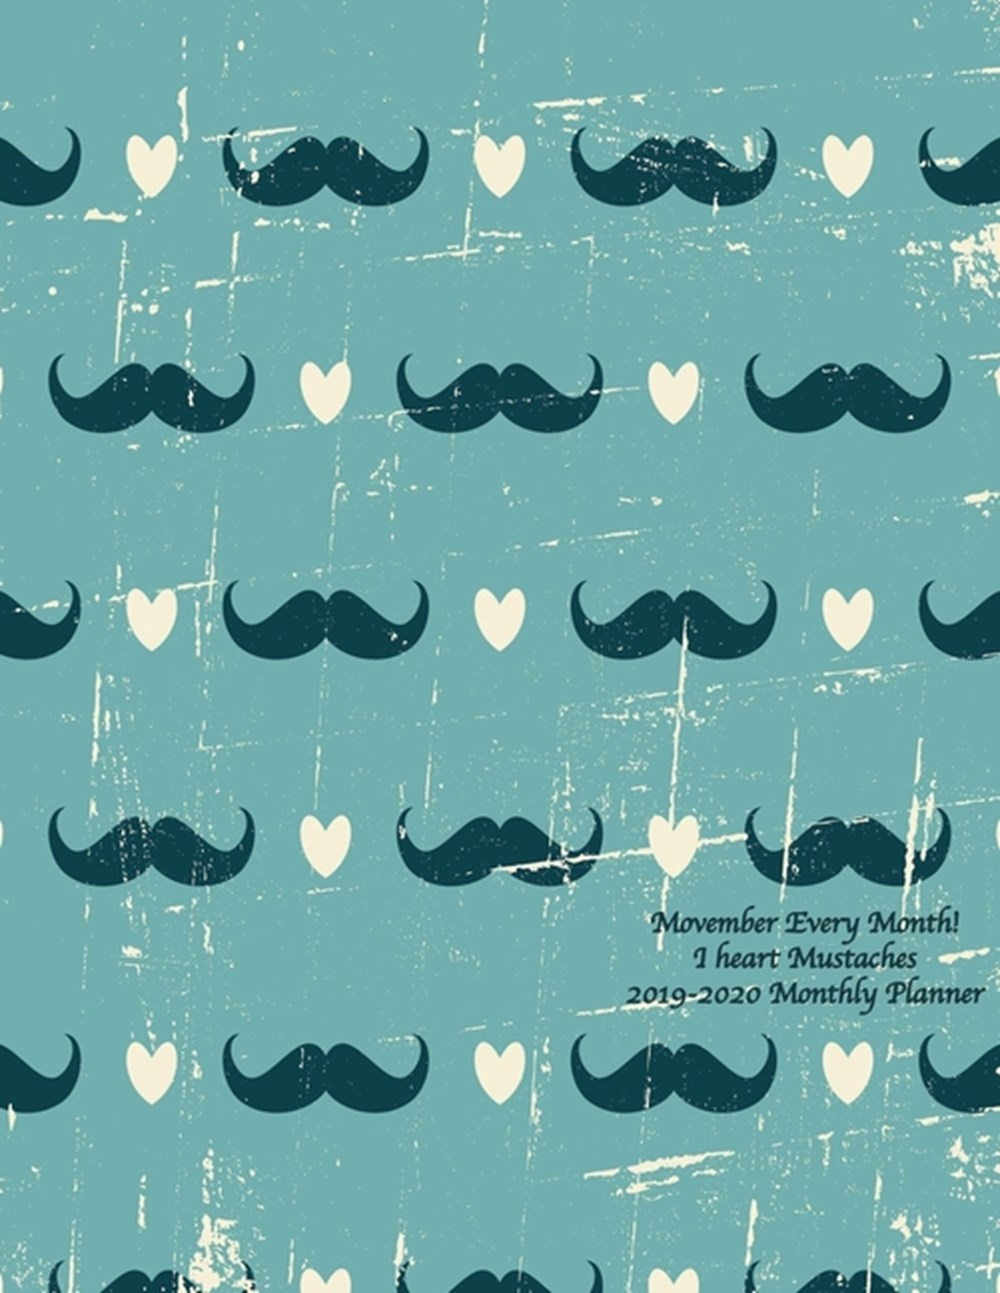 Movember Every Month! I heart Mustaches 2019-2020 Monthly Planner July 2019 To December 2020 Calenda